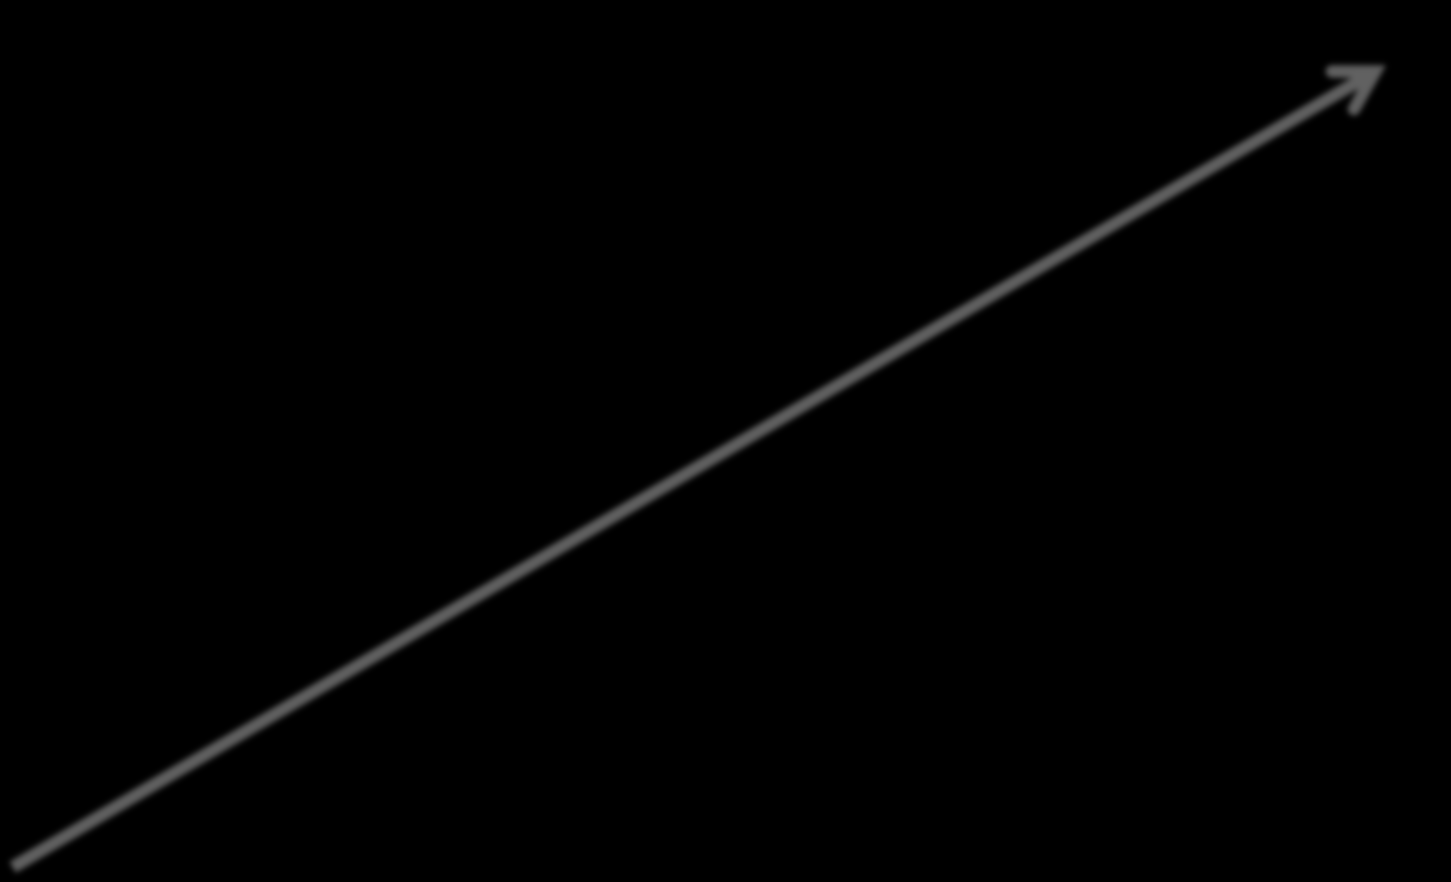 AVERAGE GROWTH OF 100%